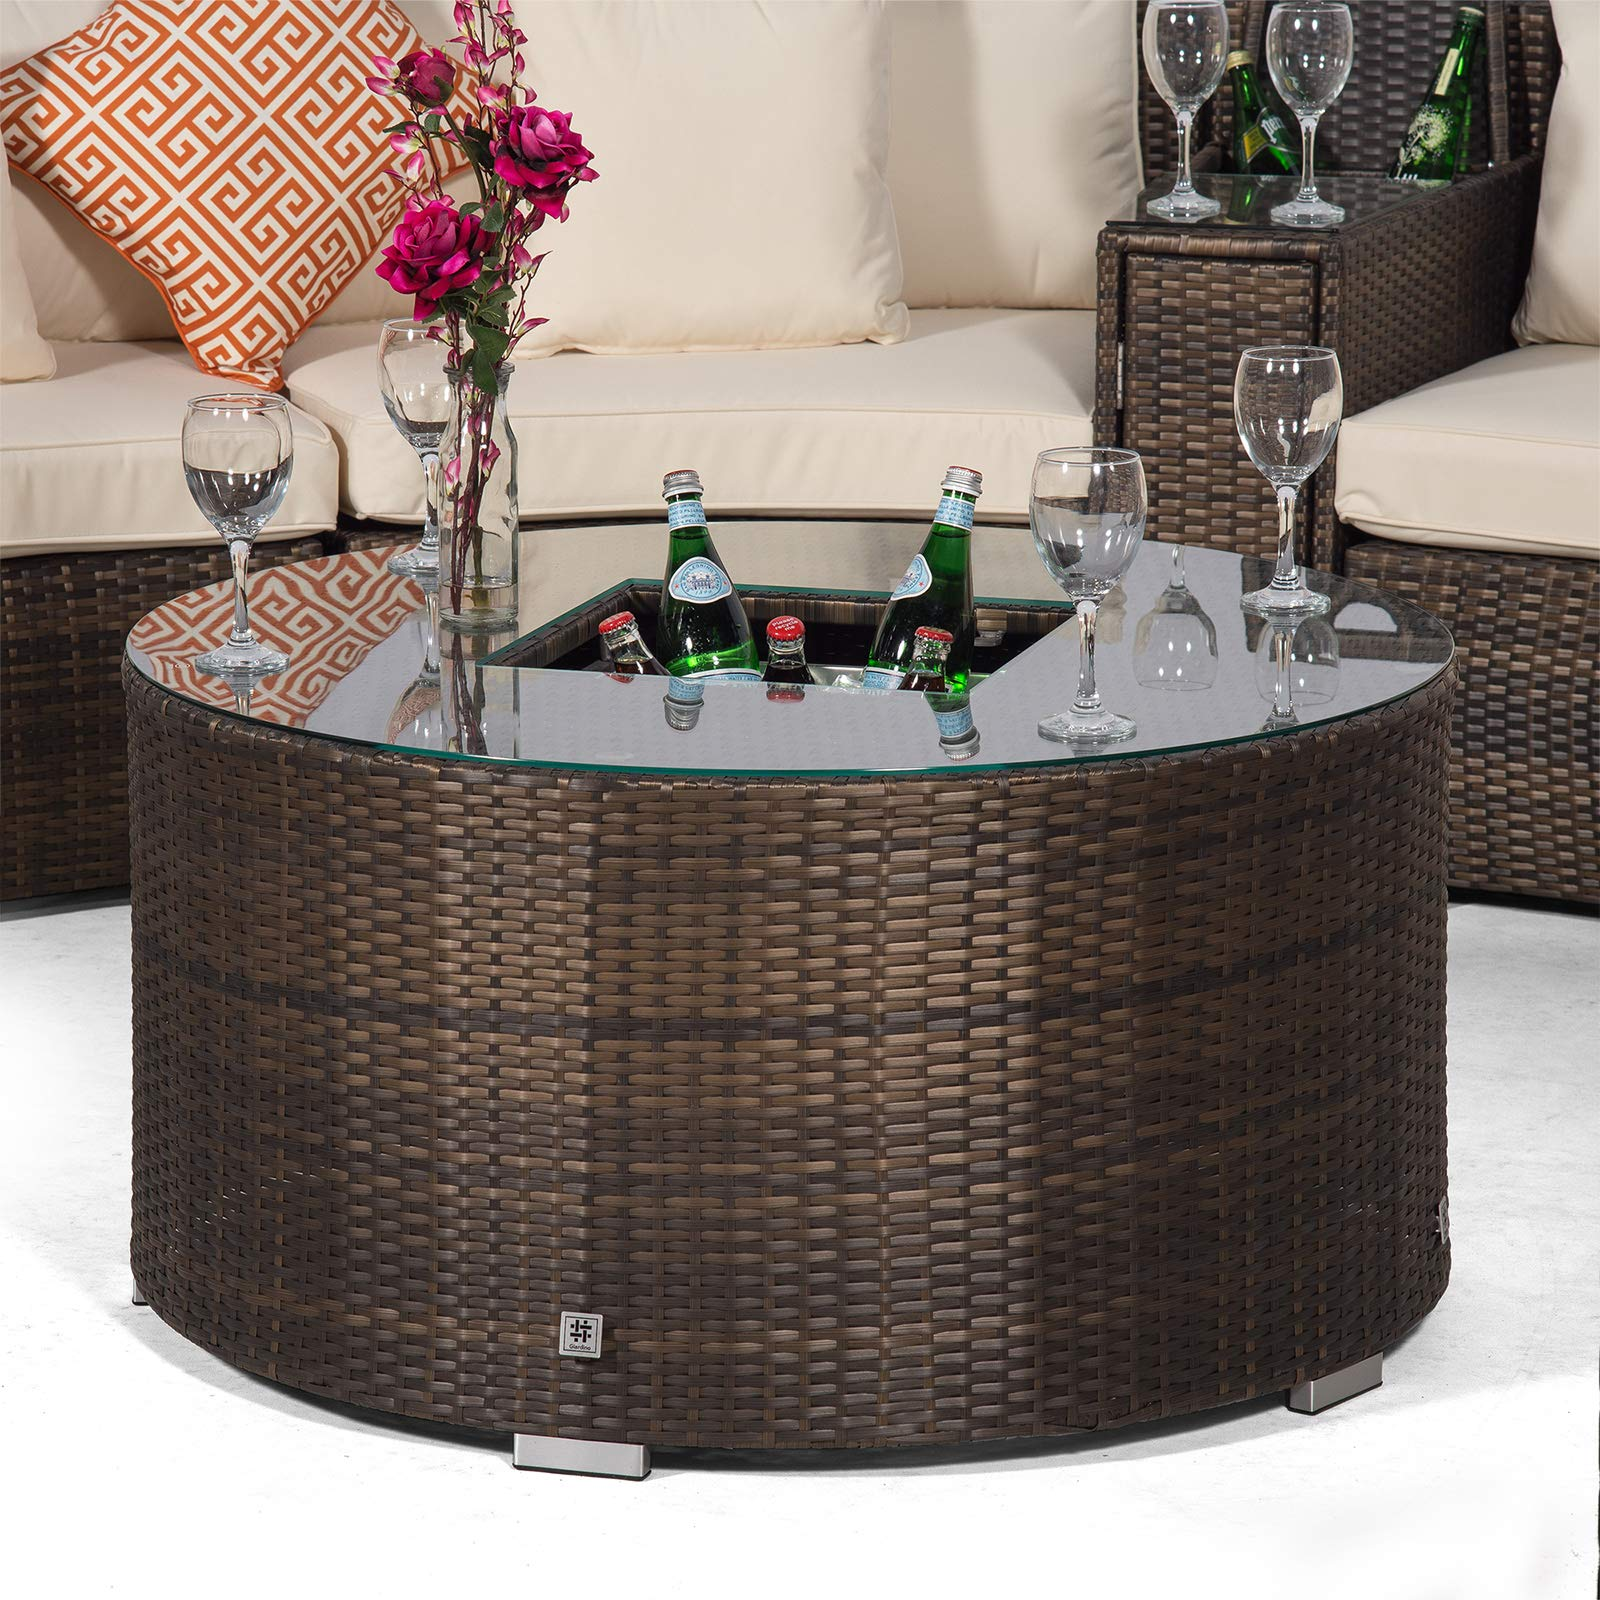 Set Giardino In Rattan.1 Armrest Consoles Outdoor Furniture Covers Coffee Table Cooler